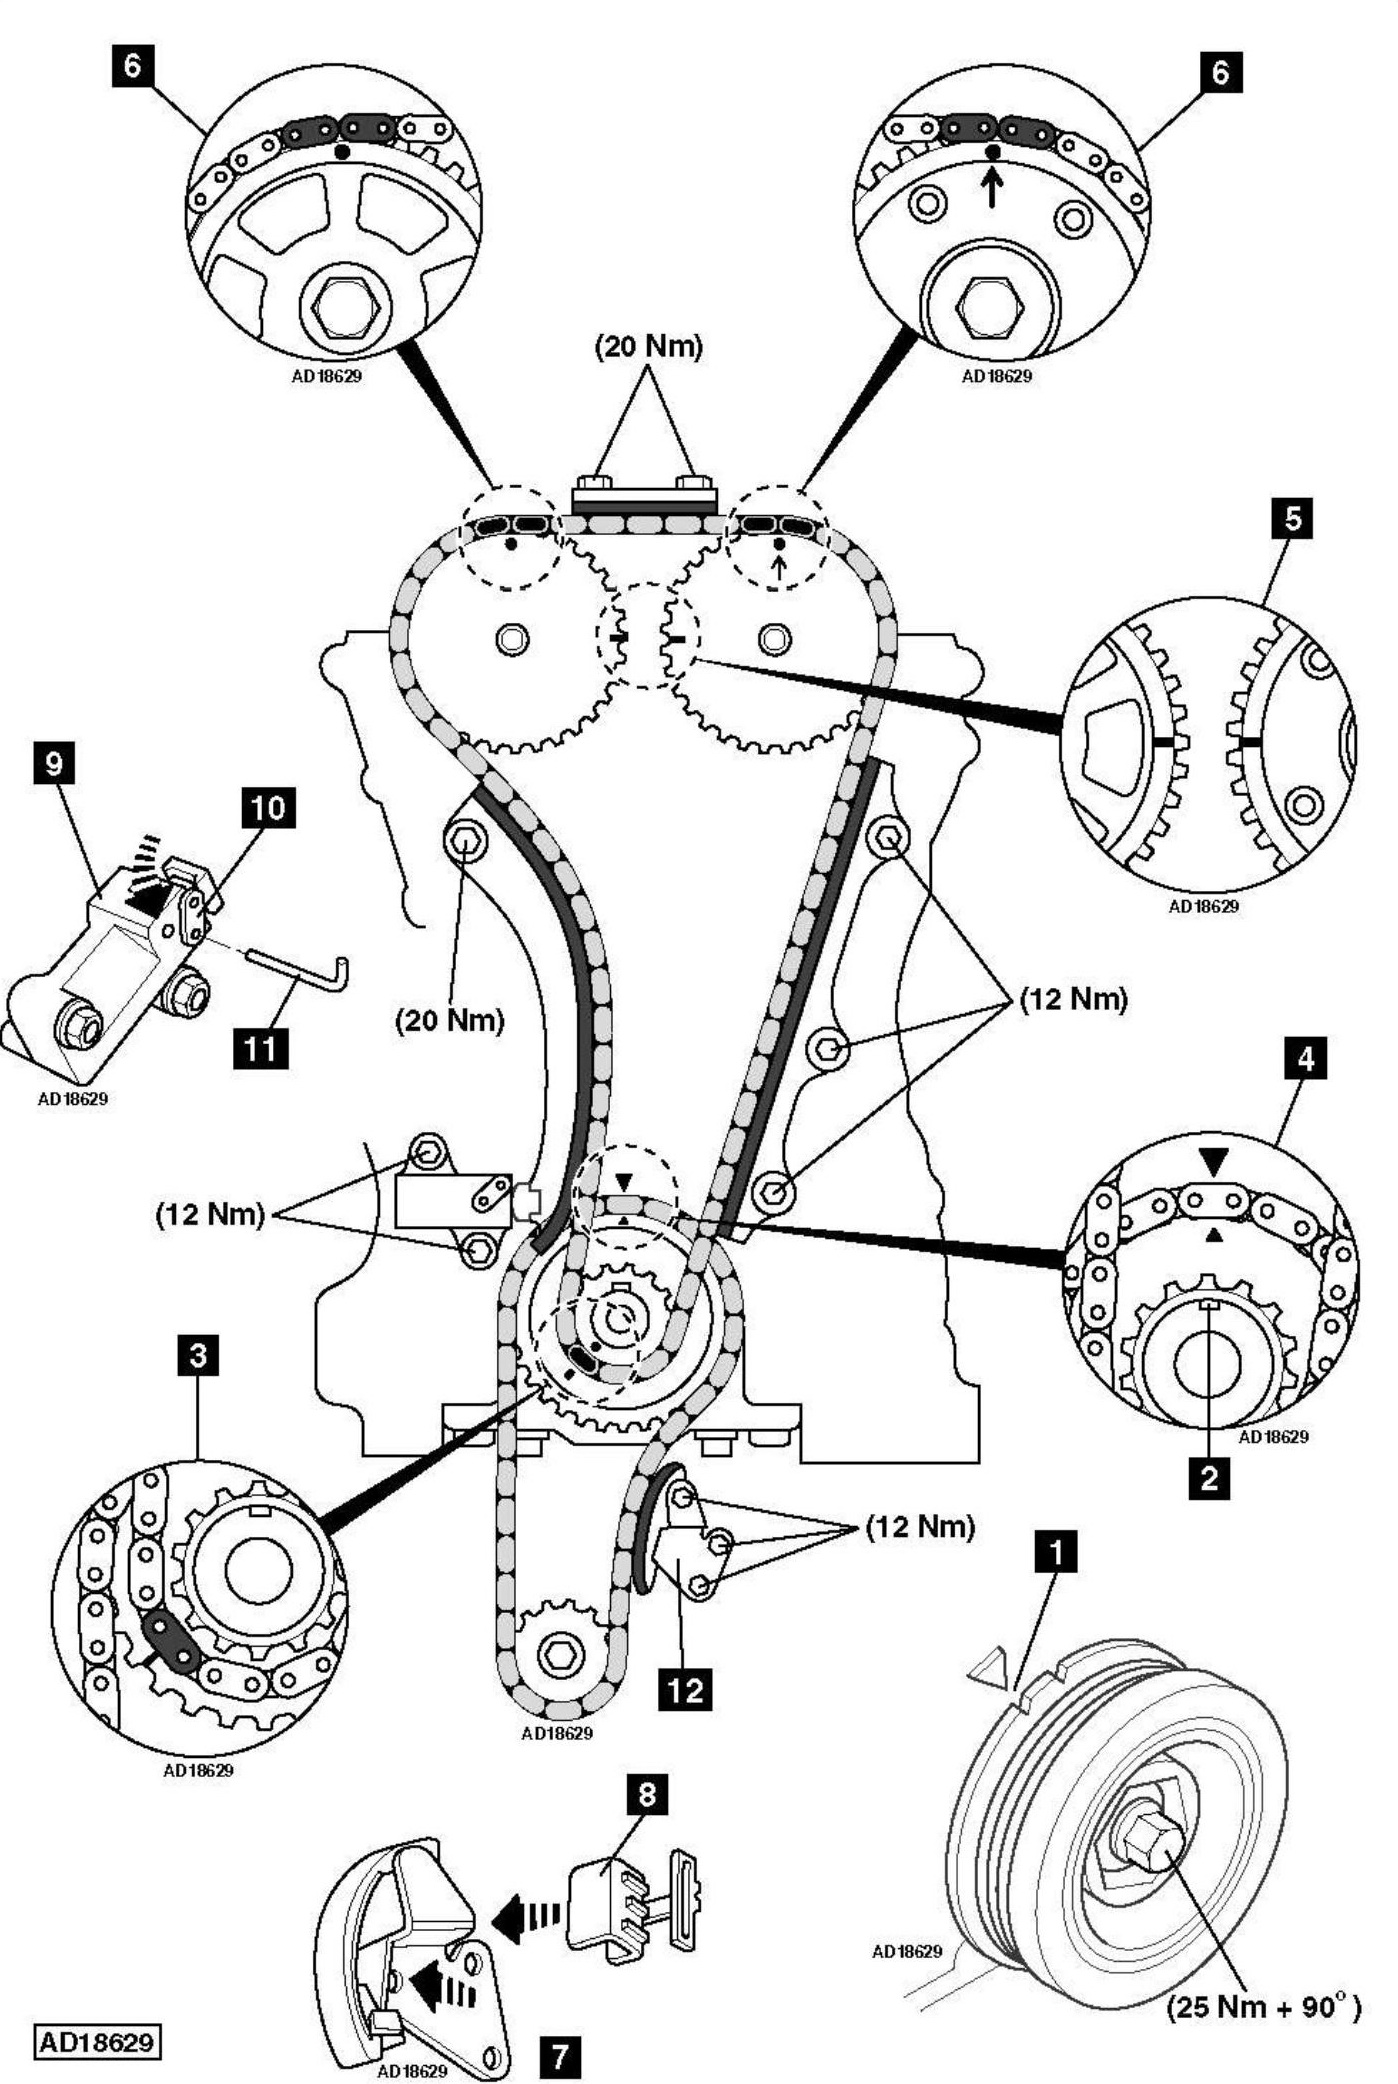 2003 honda 2.4 vtec engine diagram